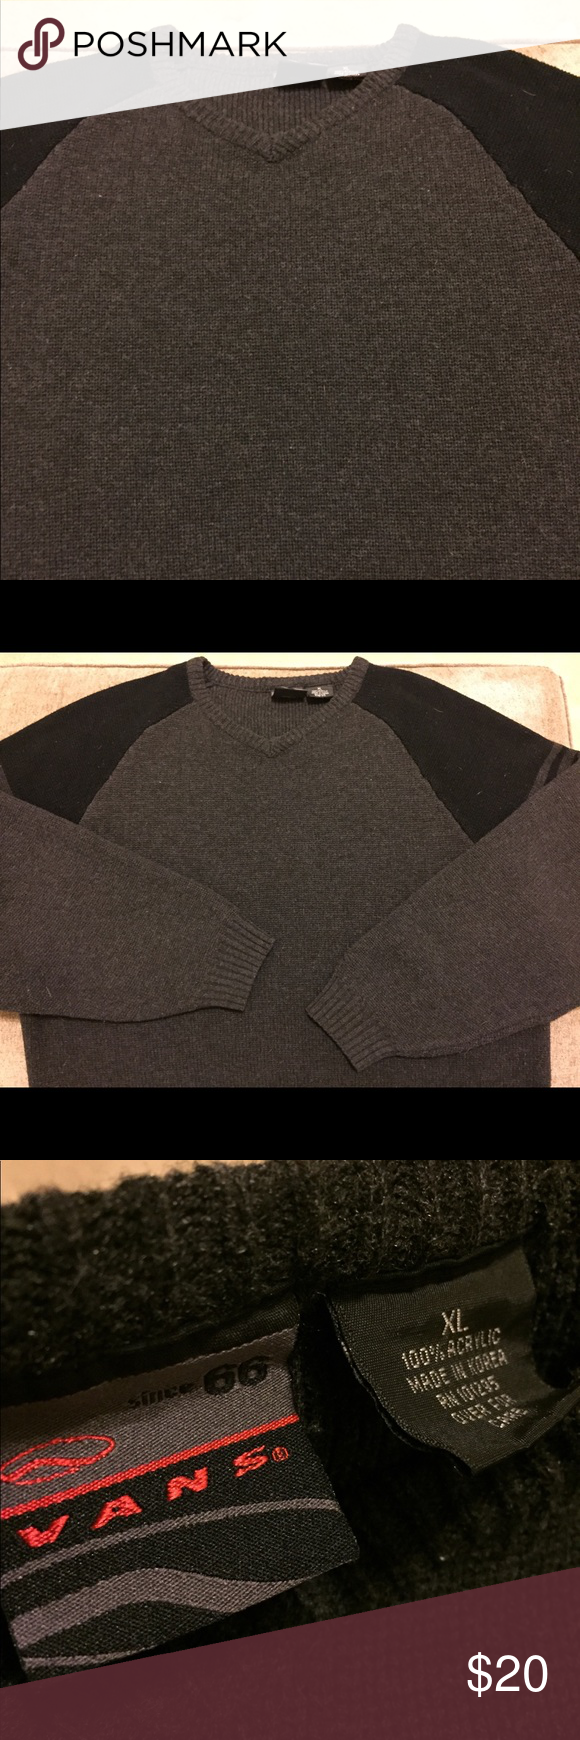 e2c1c54c06 VANS Since 66 Mens XL Sweater Vans Since 66 Men s Size  XL Style  Sweater  Color  Gray Black Brand  Vans Condition  Like New Any questions